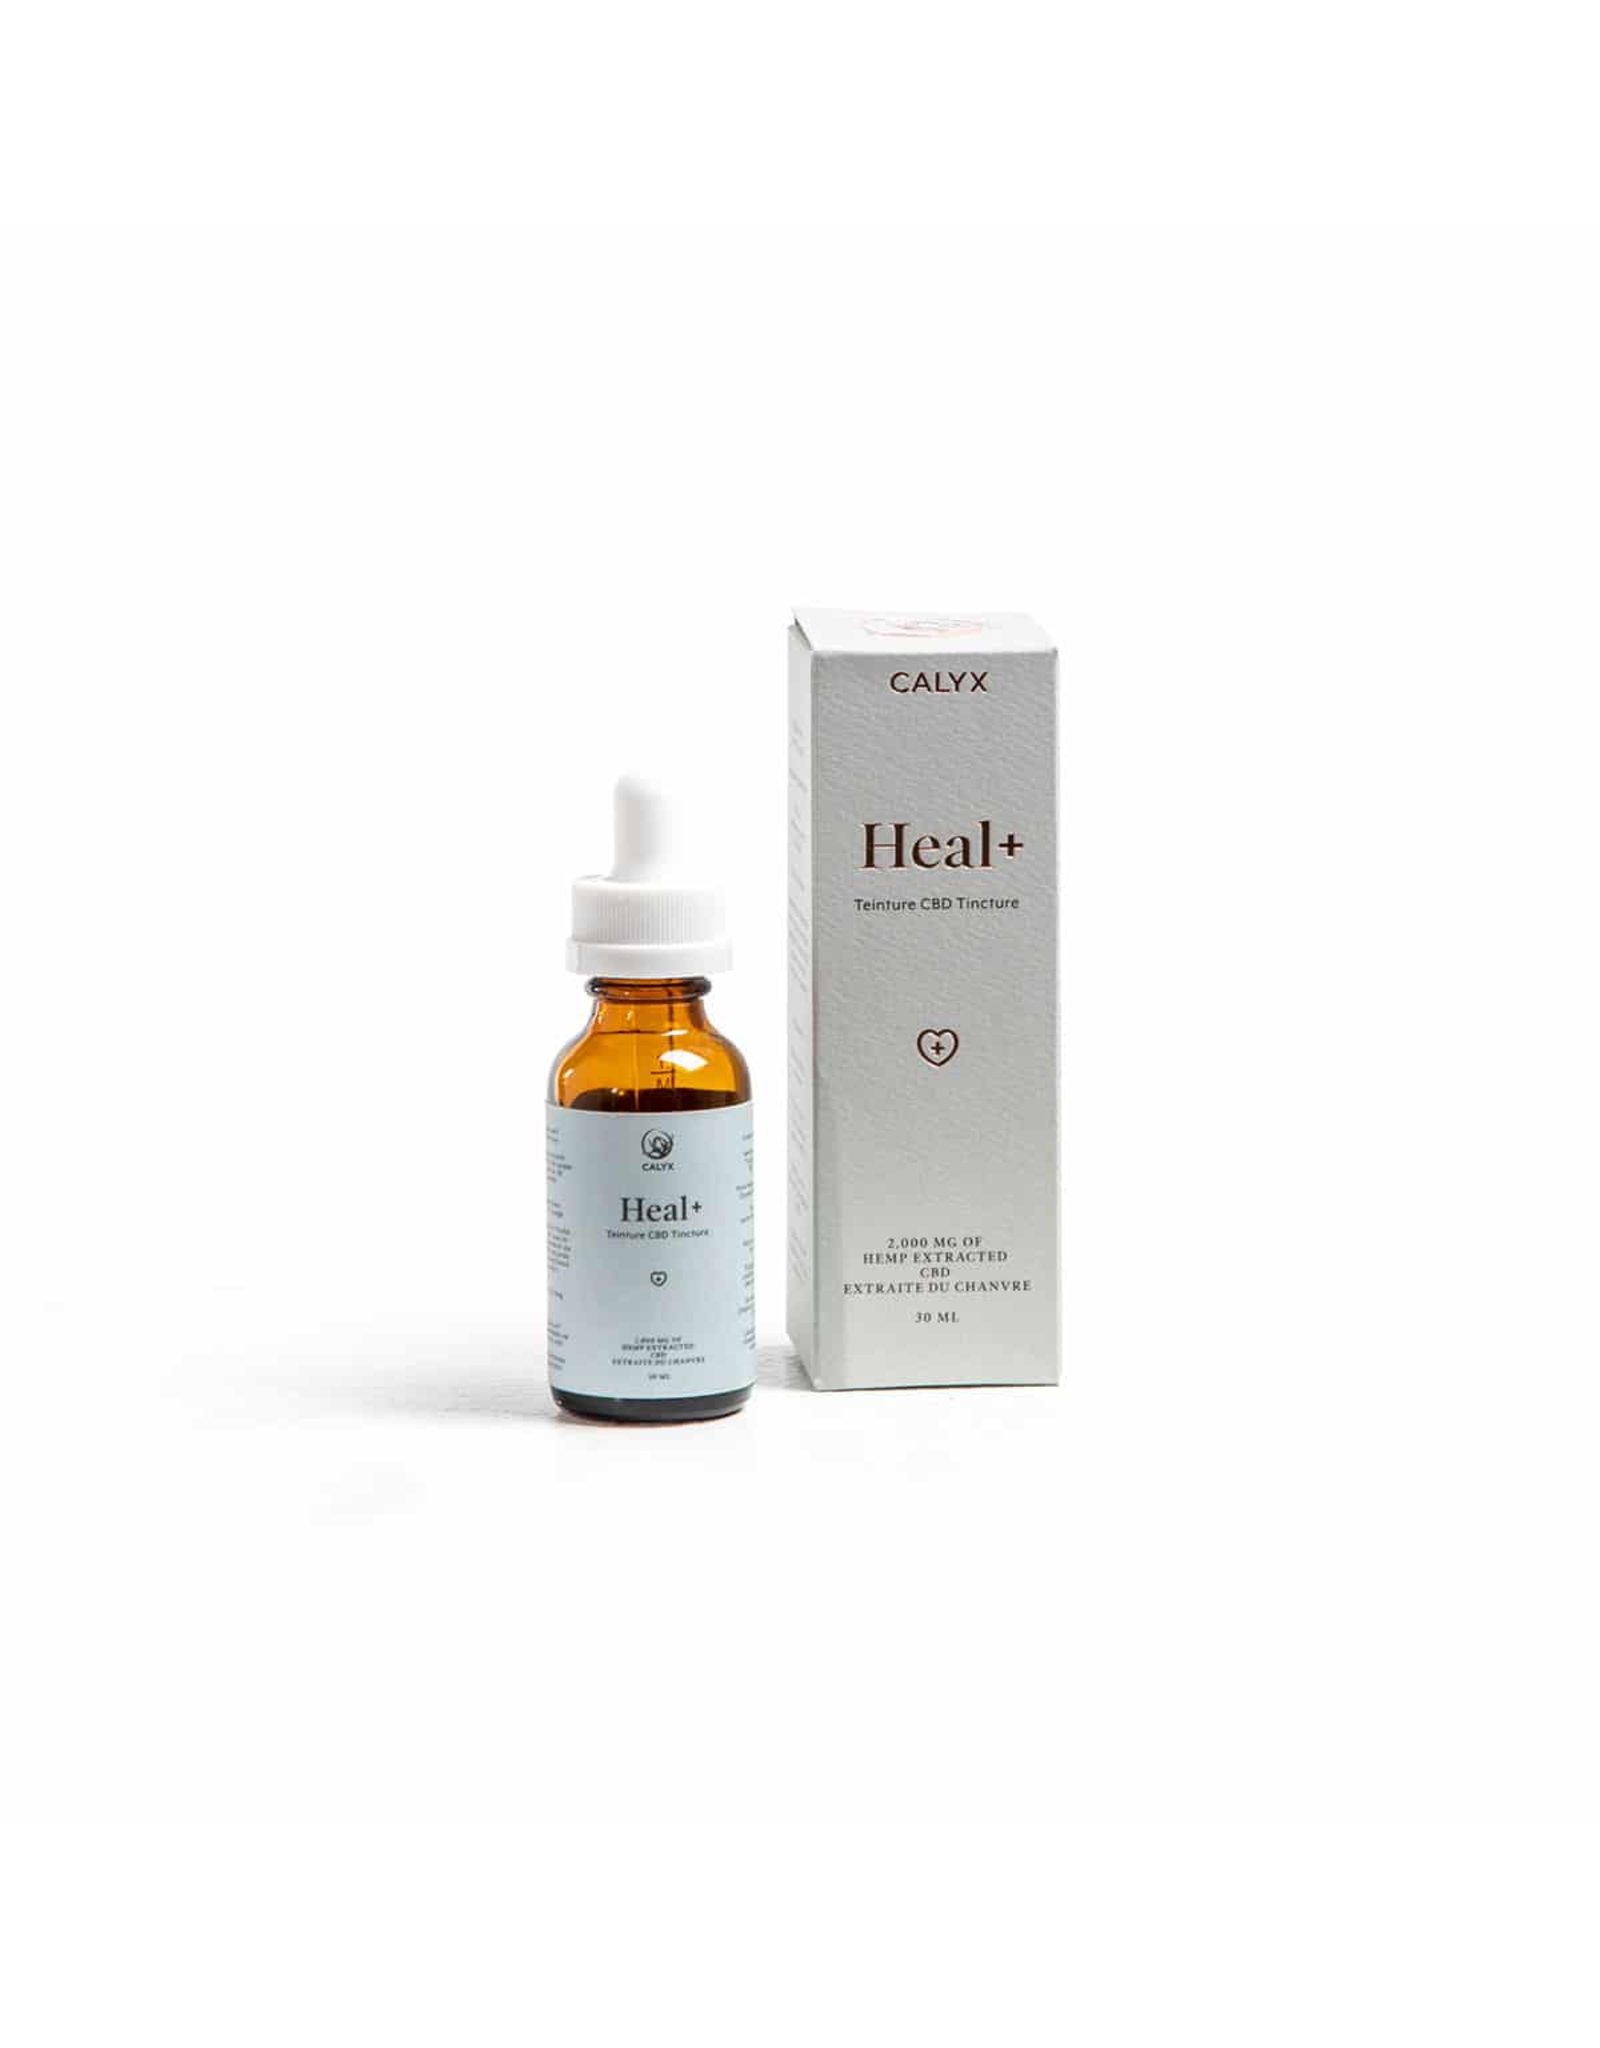 CALYX Heal+ 2000 mg CBD Oil